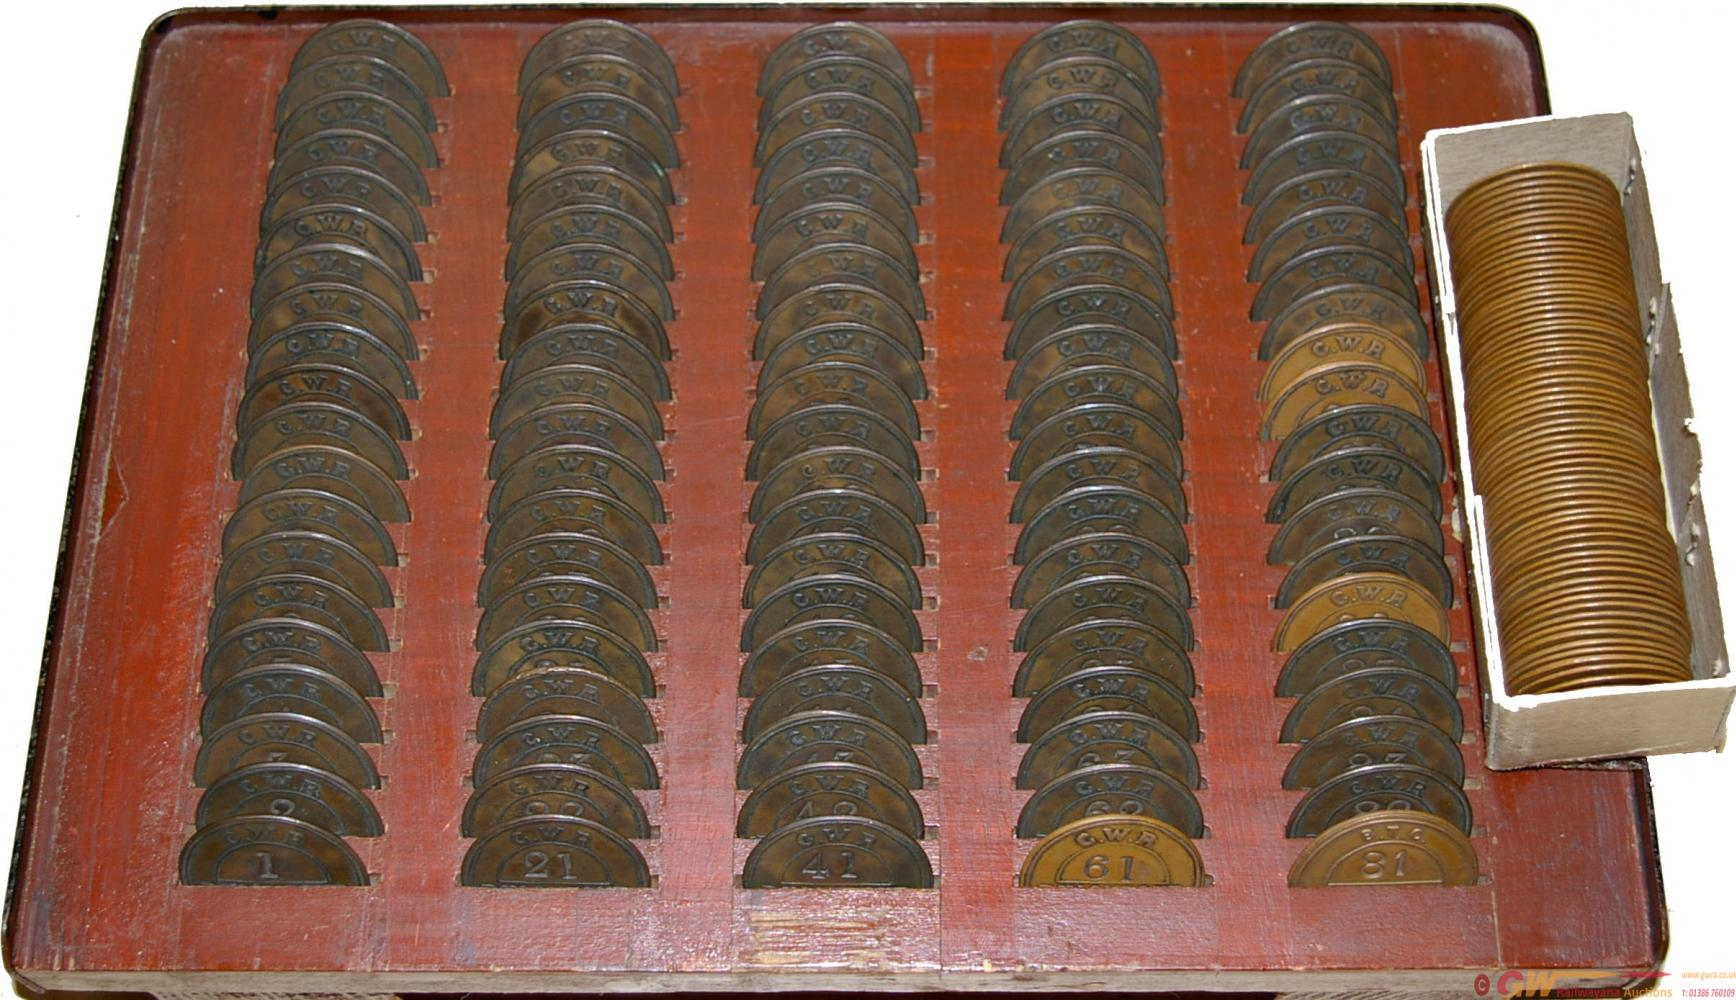 GWR Pay Checks, Qty 170 Comprising 1 - 100 Mounted